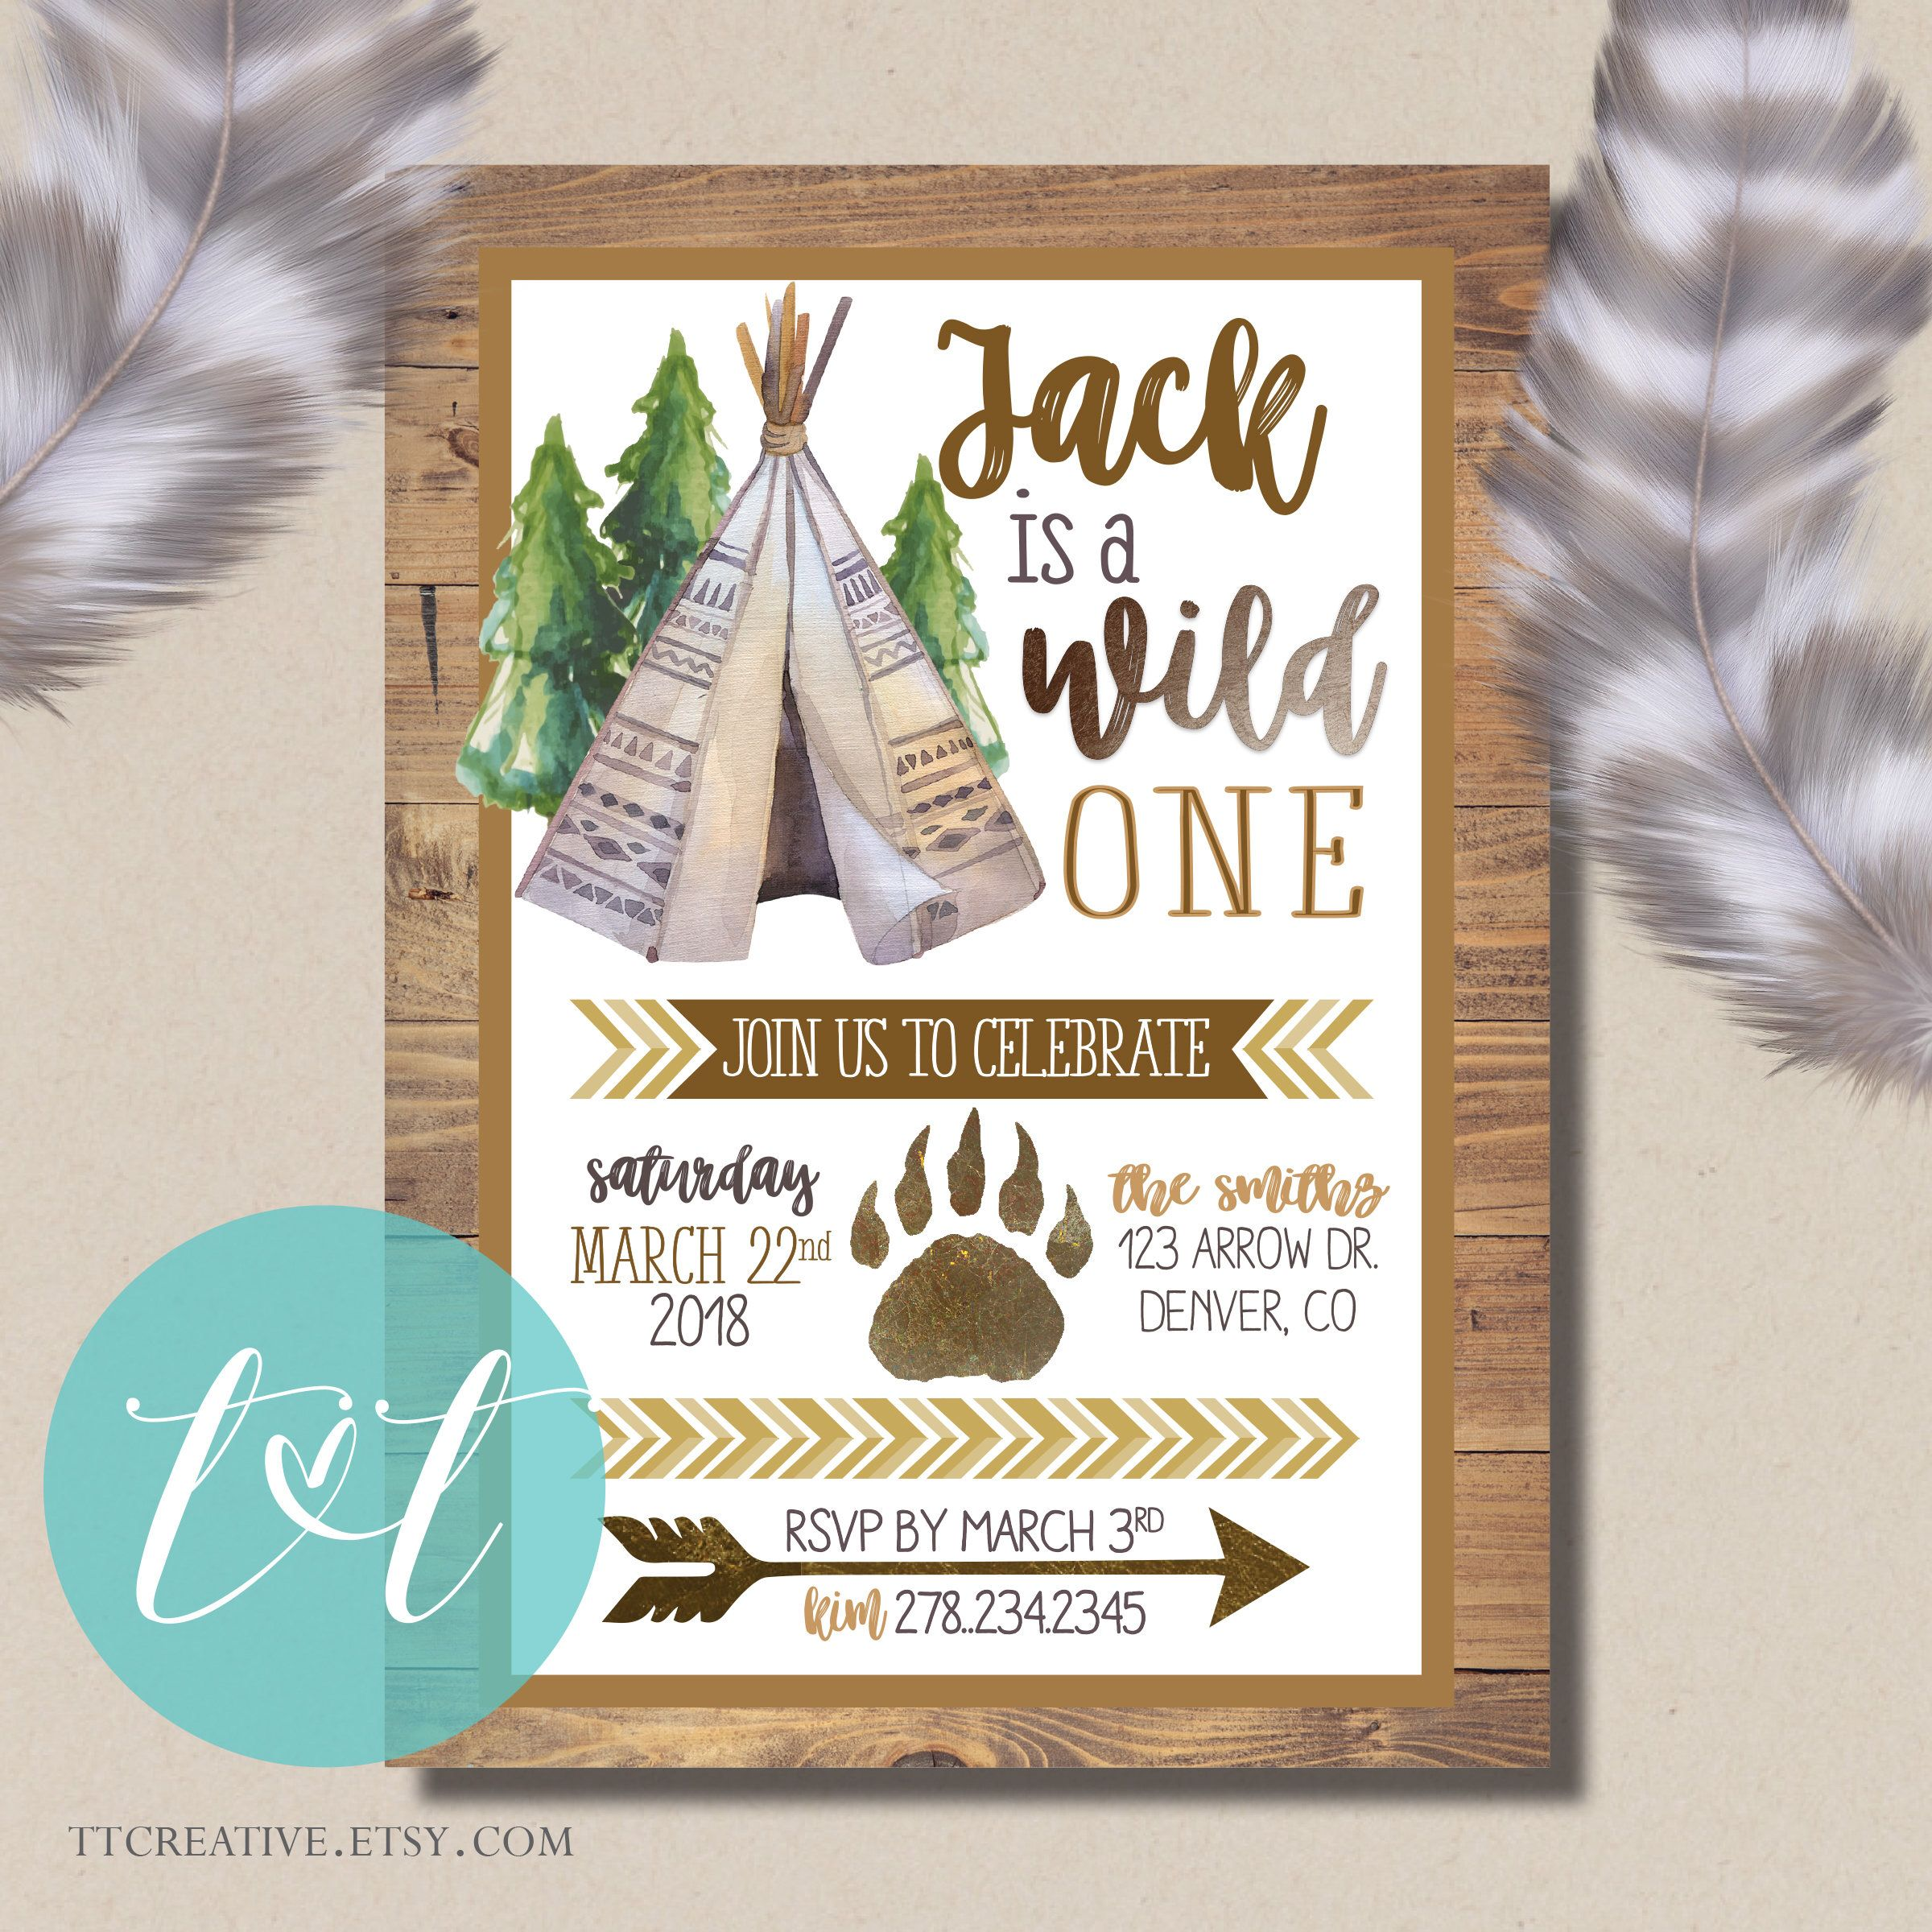 Wild One Boy Birthday Invite Tribal Boho Teepee 1st 1stbirthdayinvite Wildone Wildonebirthday